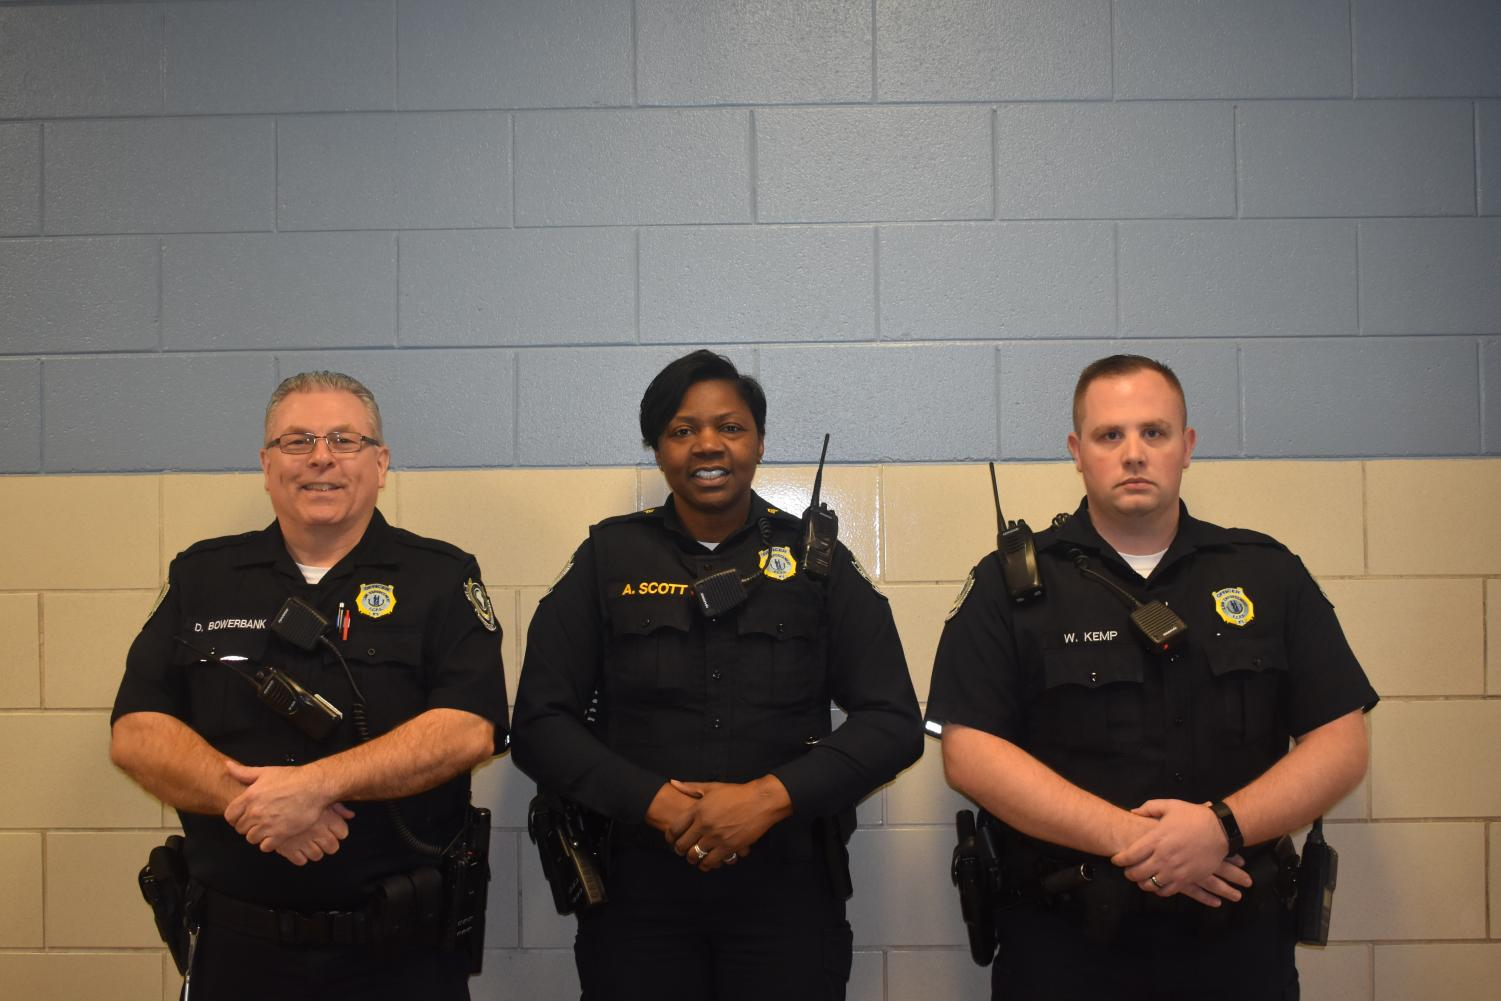 Pictured left to right:  Officers Bowerbank, Scott, and Kemp